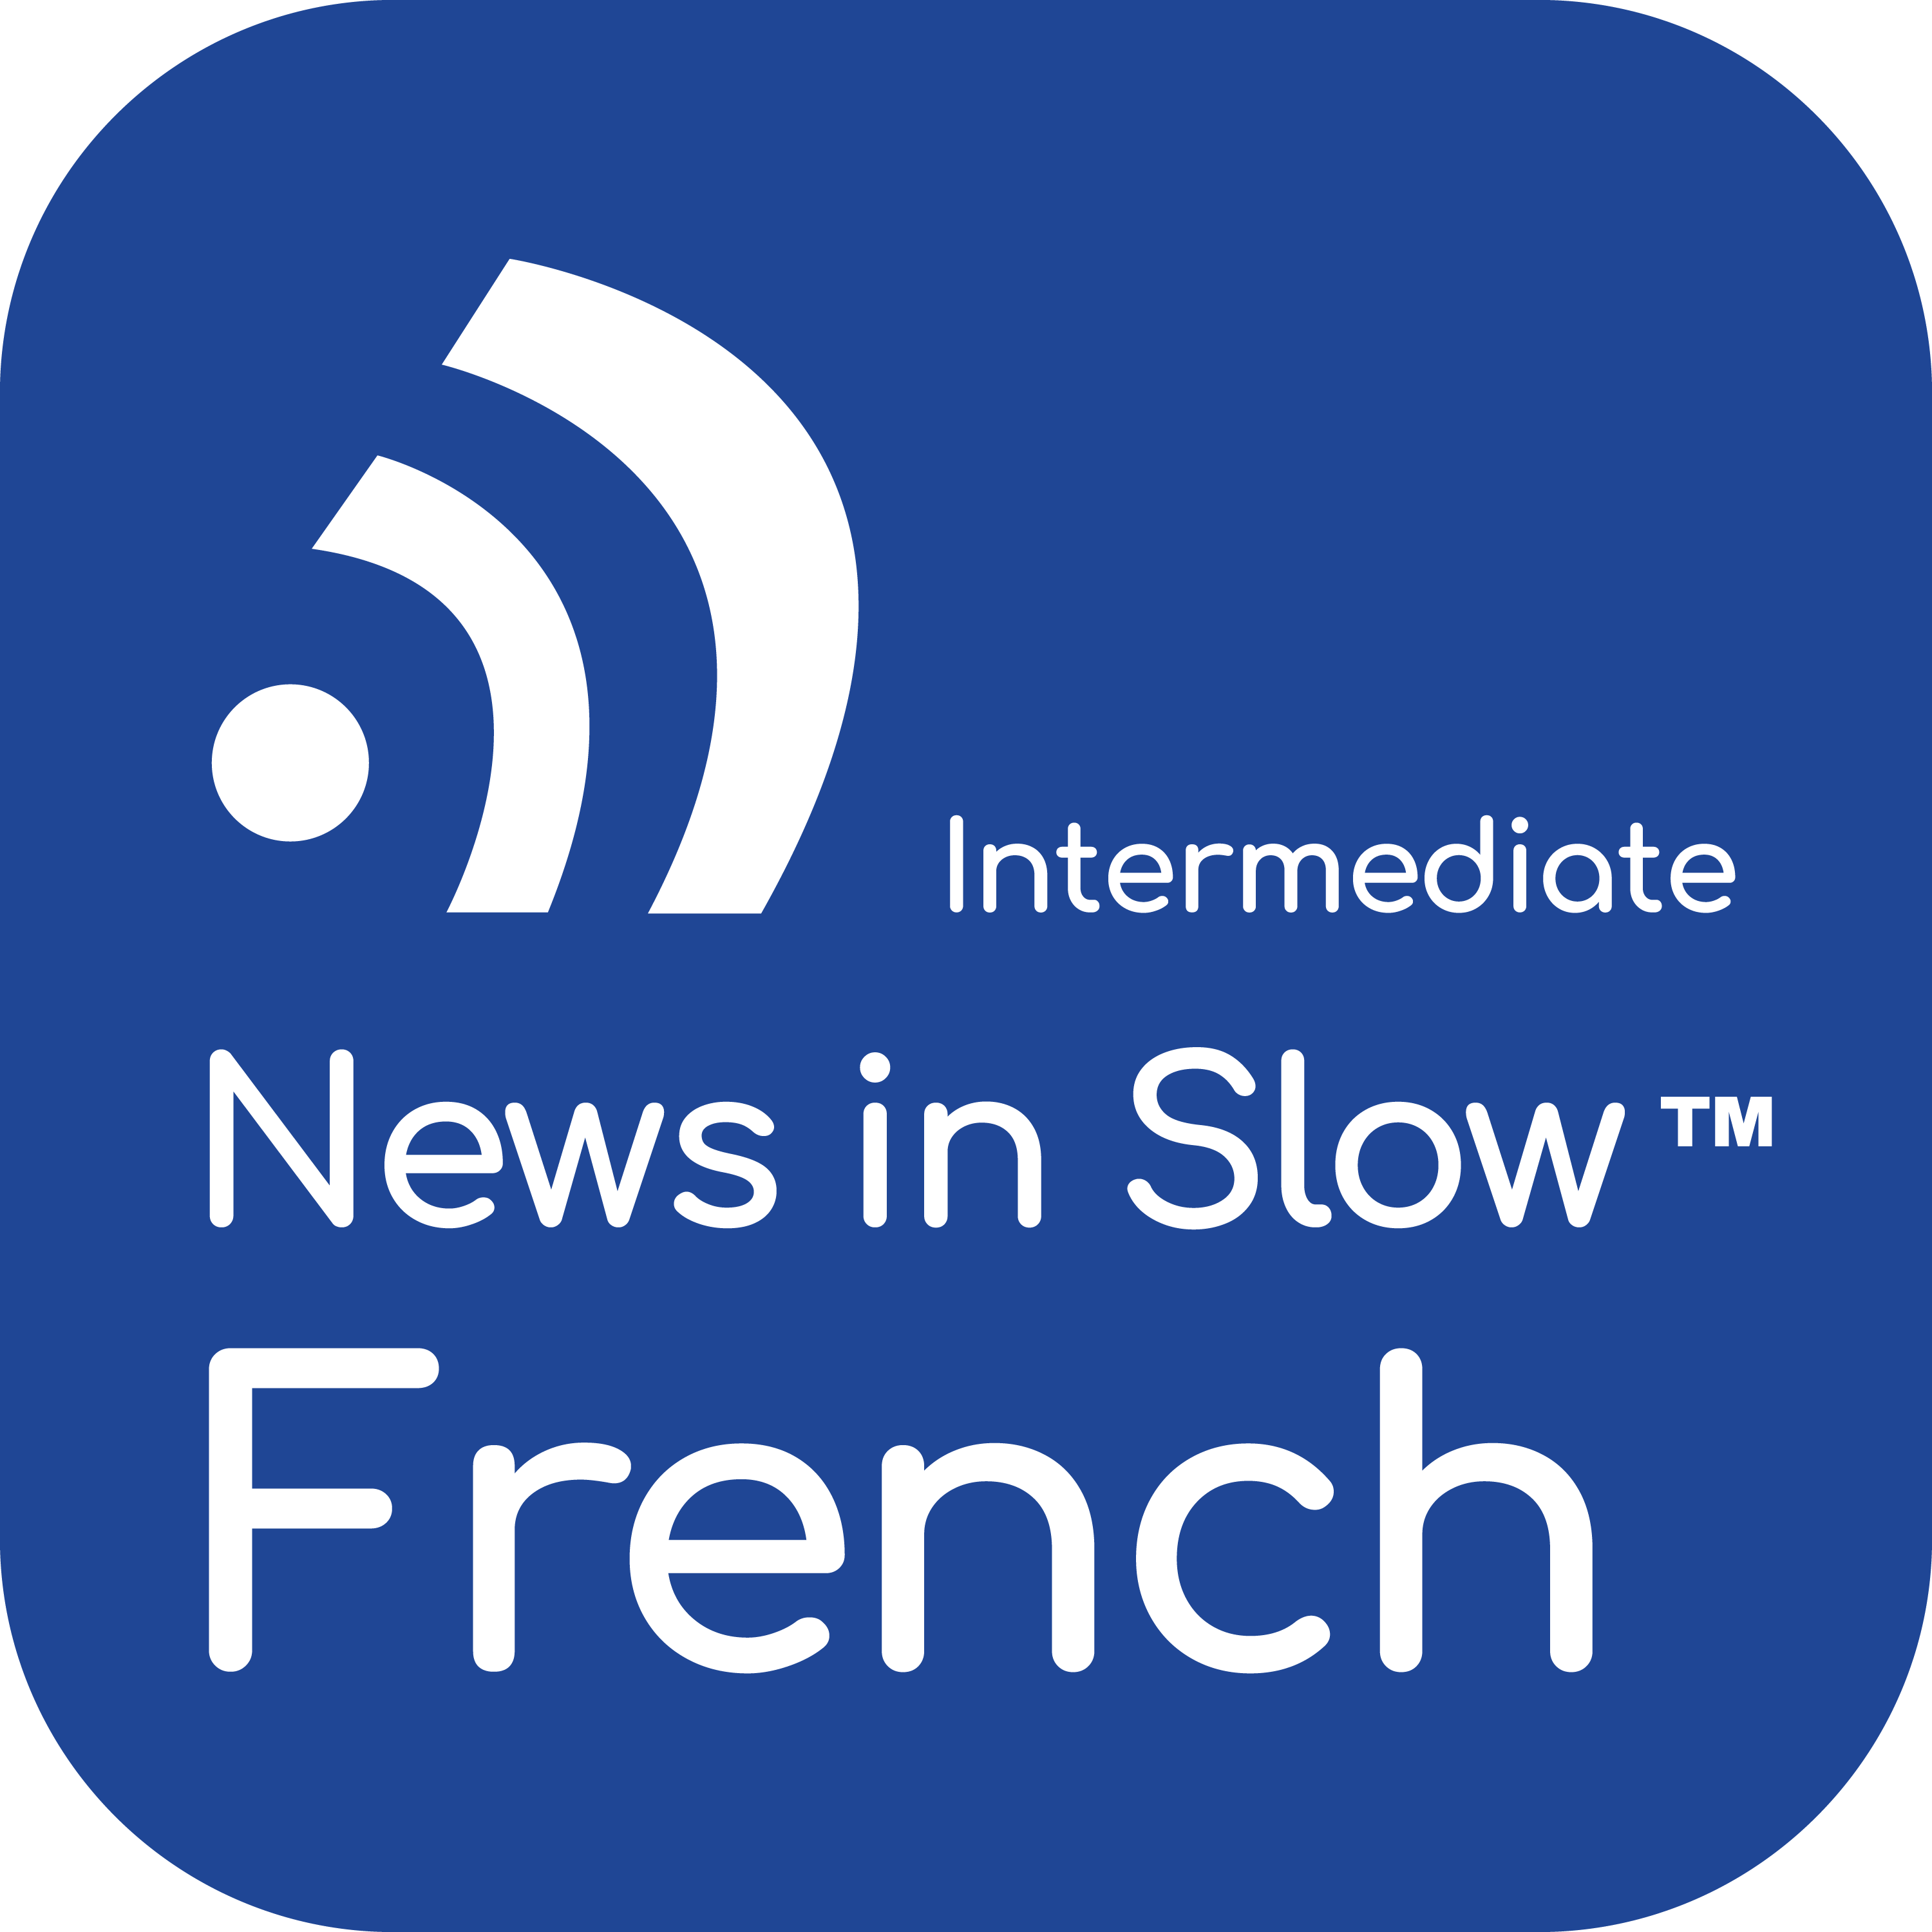 News in Slow French #264 - Learn French through current events